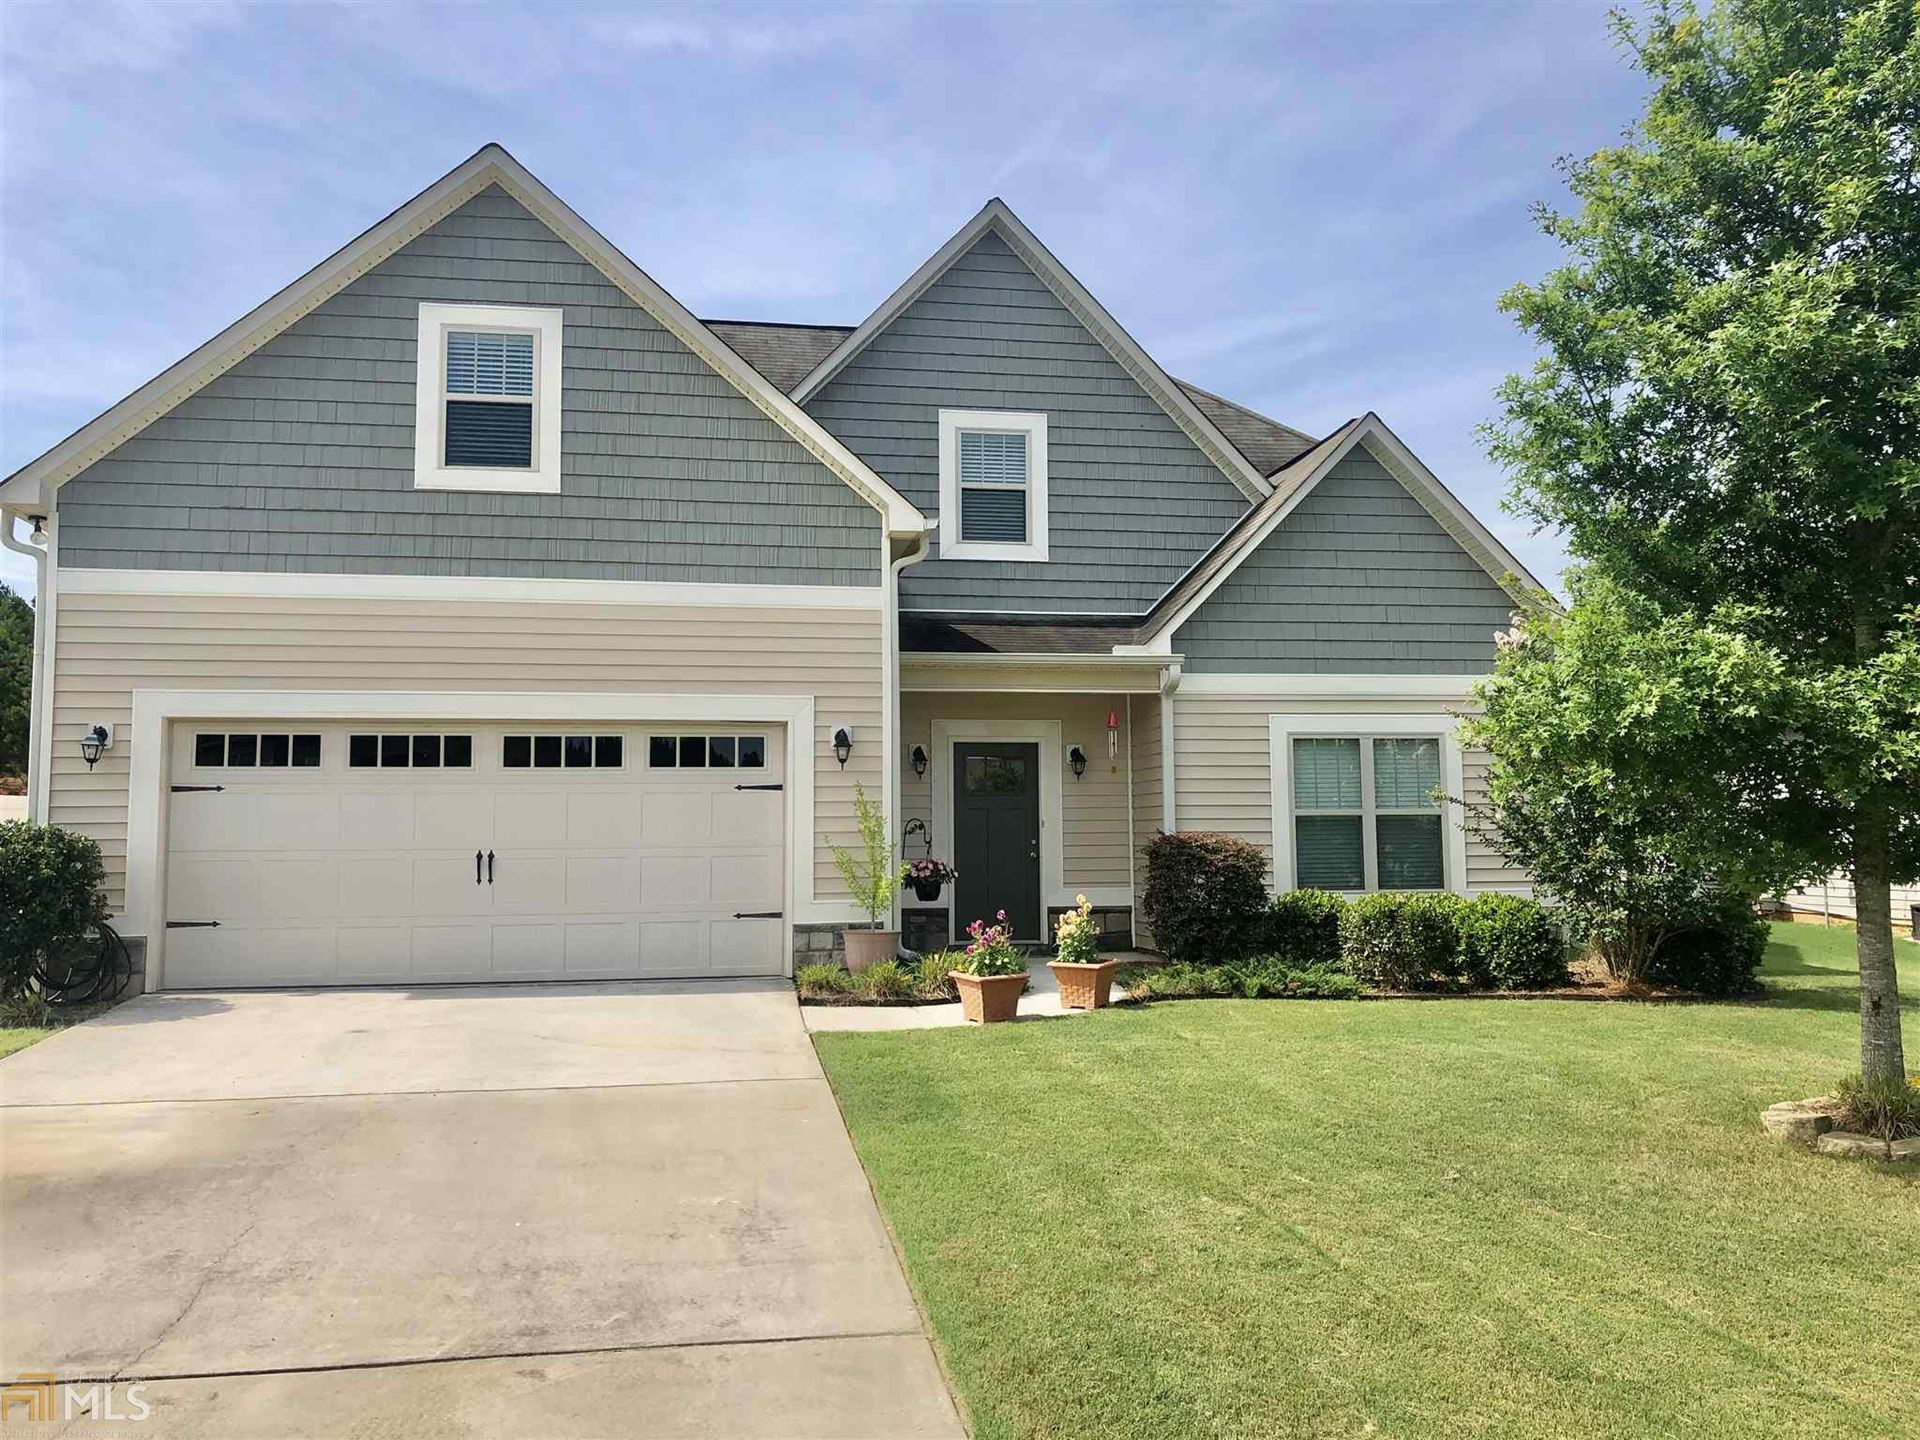 202 Beech Creek Dr, LaGrange, GA 30240 - #: 8813367